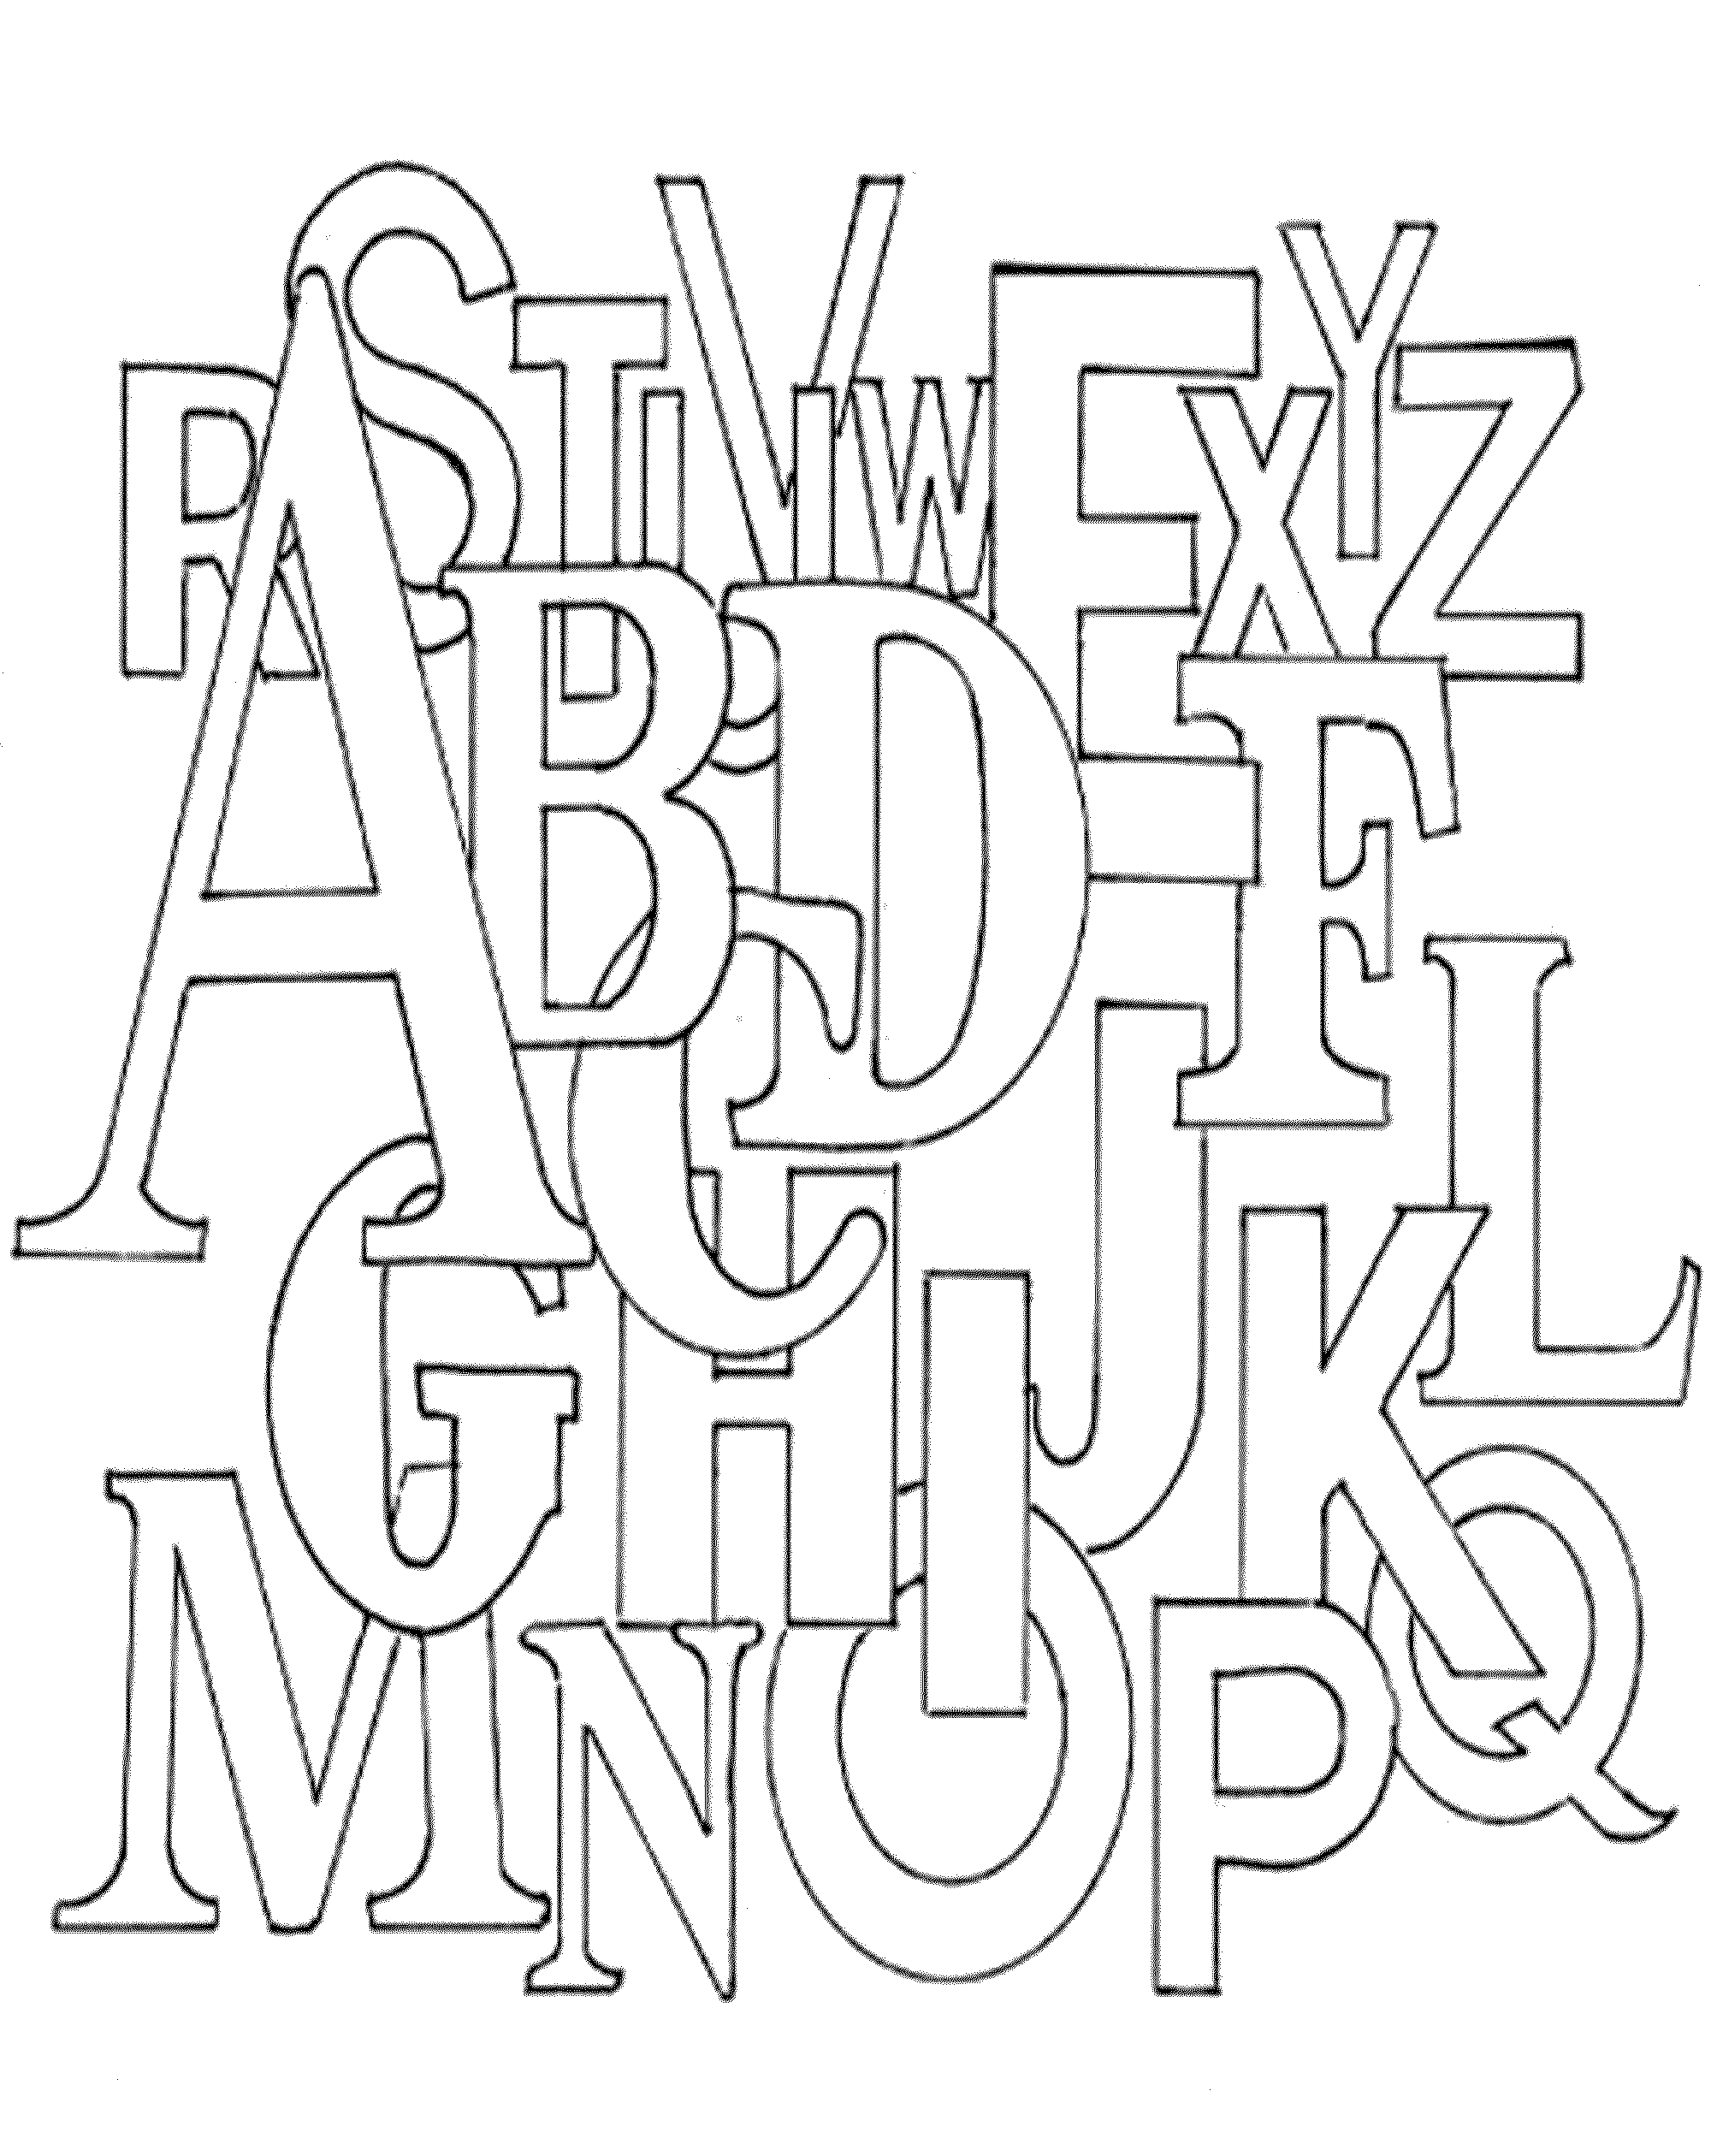 coloring worksheets abc free printable abc coloring pages for kids coloring abc worksheets